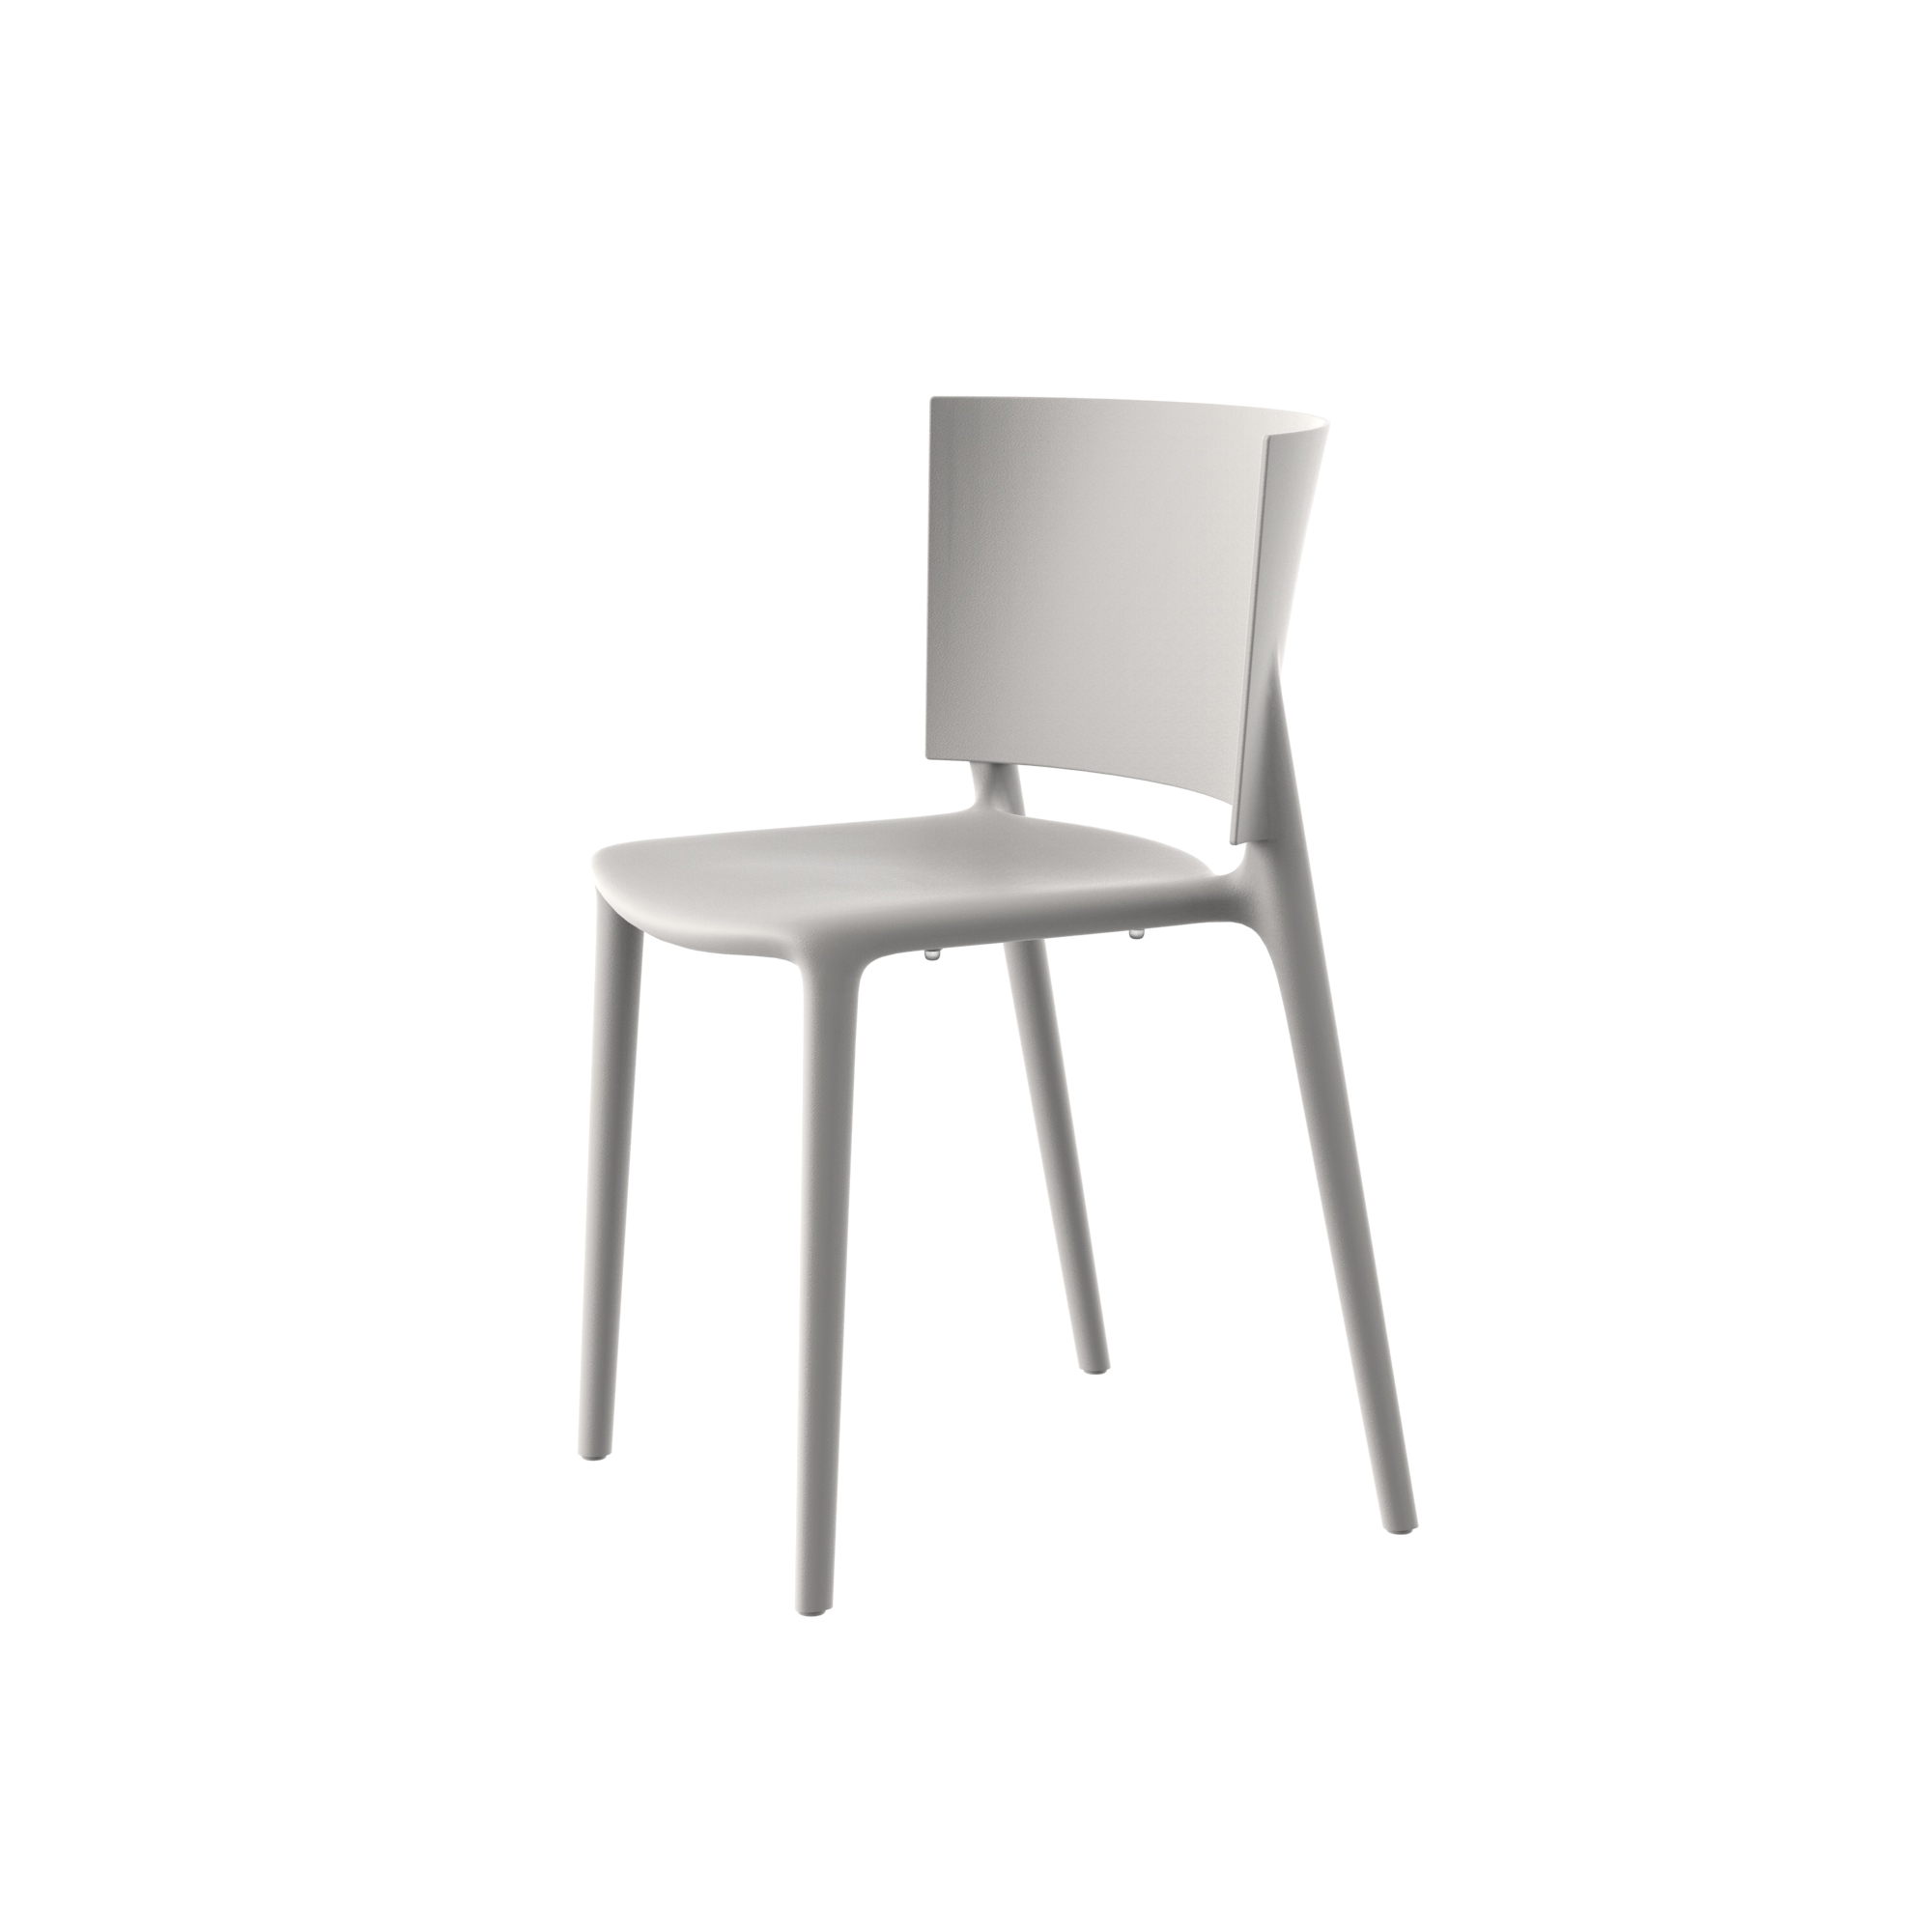 AFRICA CHAIR EUGENI QUITLLET VONDOM OUTDOOR STACKABLE SILLA EXTERIOR DESIGN (2)